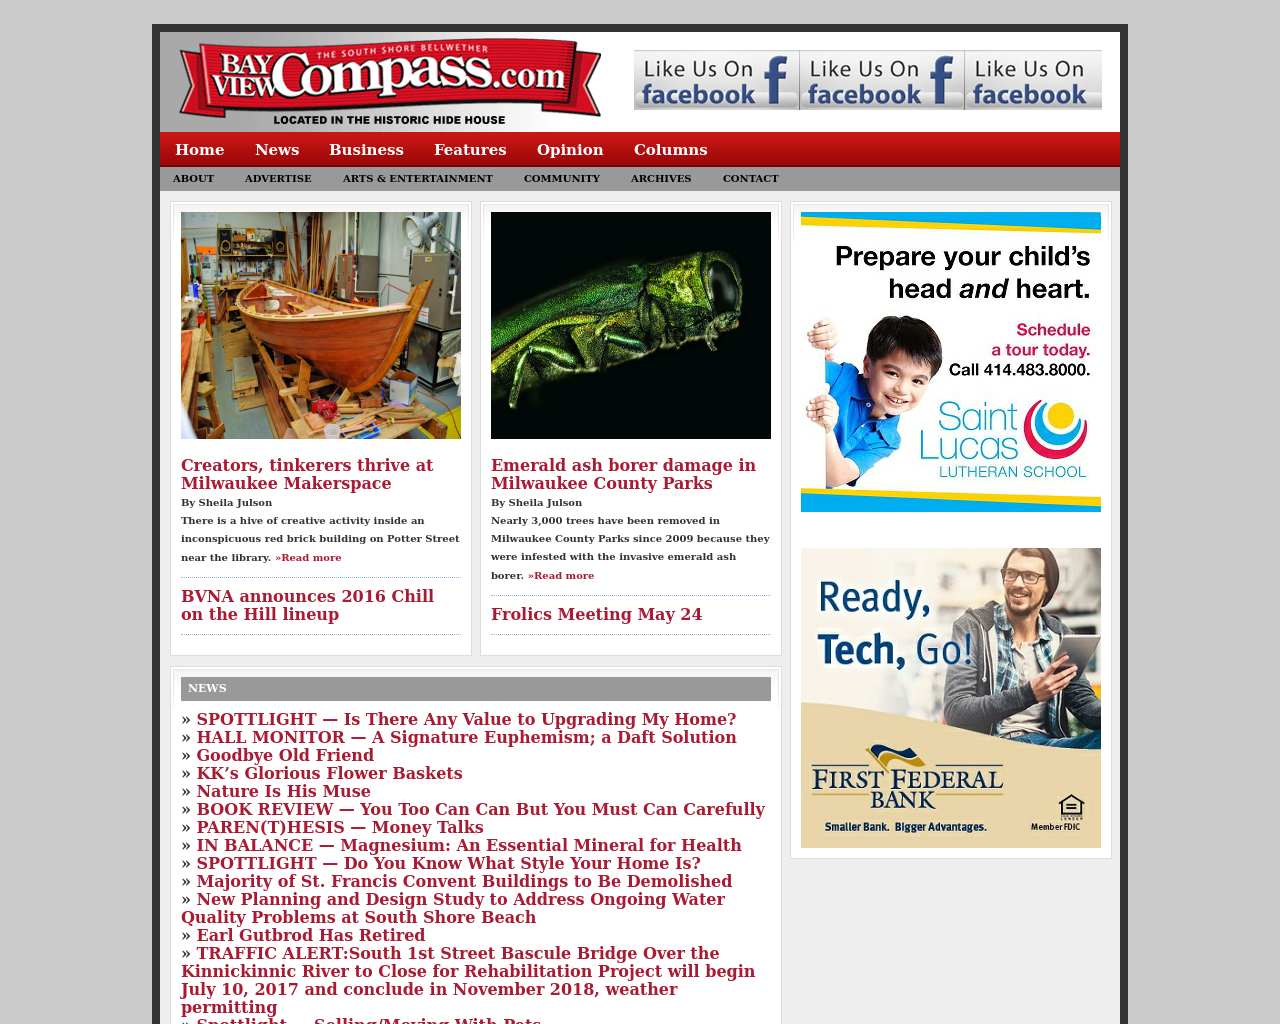 Bay-View-Compass-Advertising-Reviews-Pricing